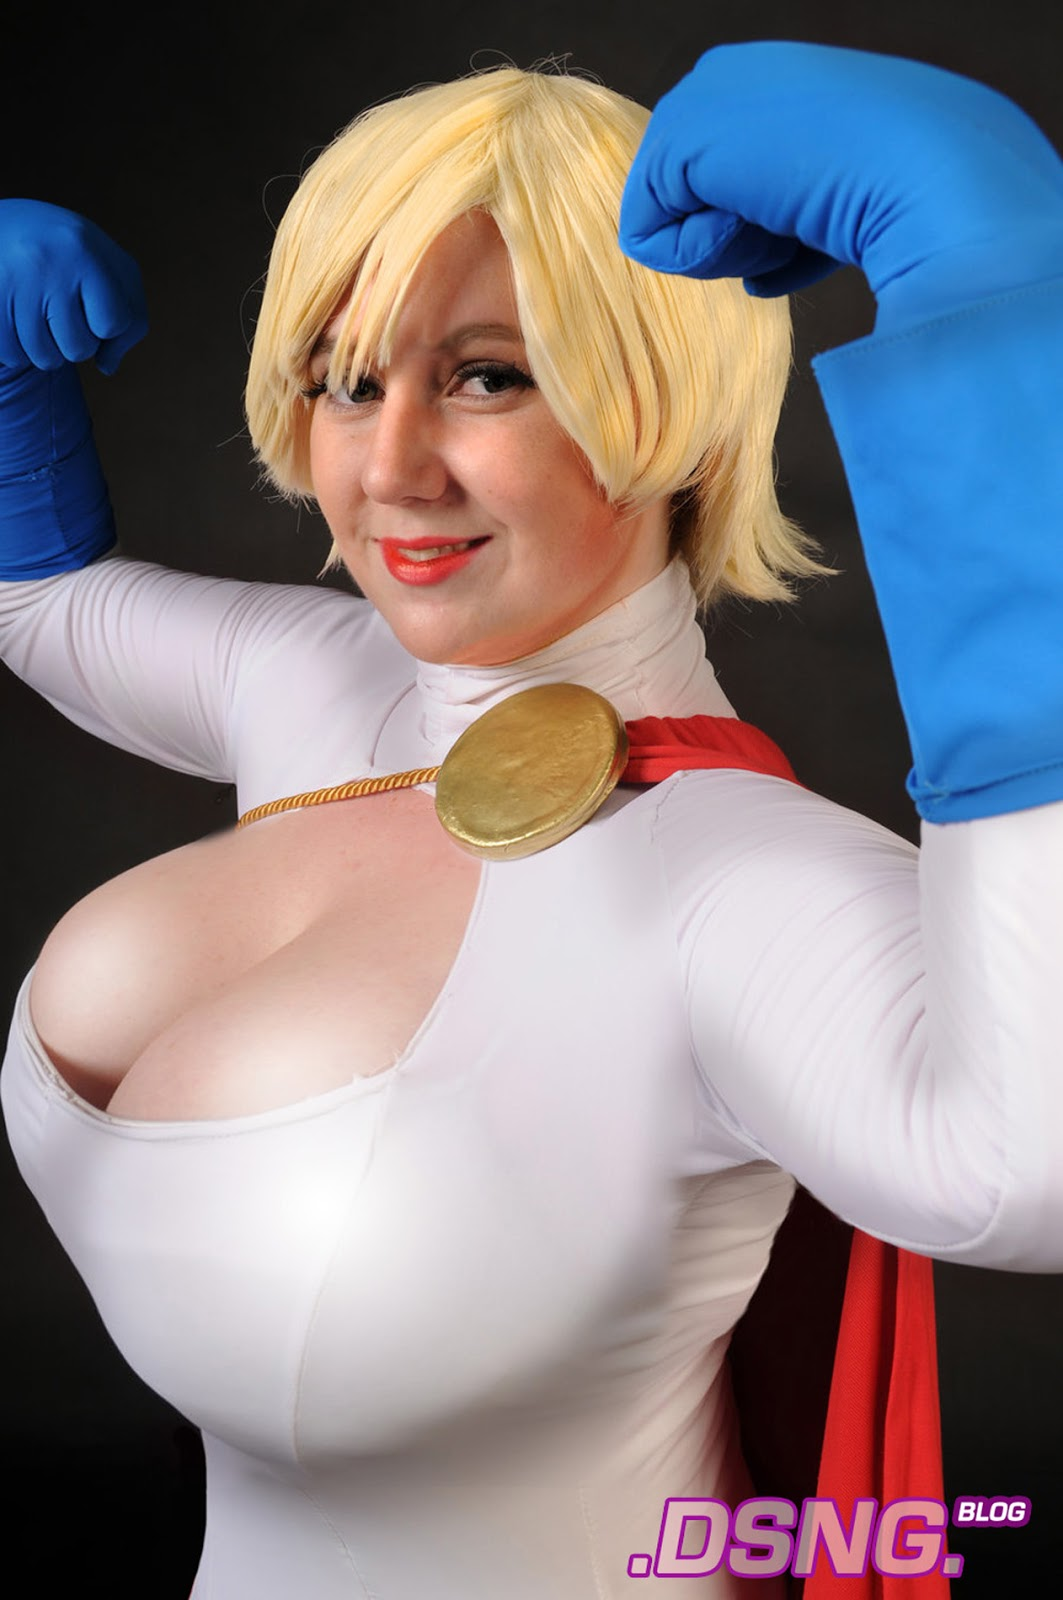 Woman cosplay boobs porn pictures